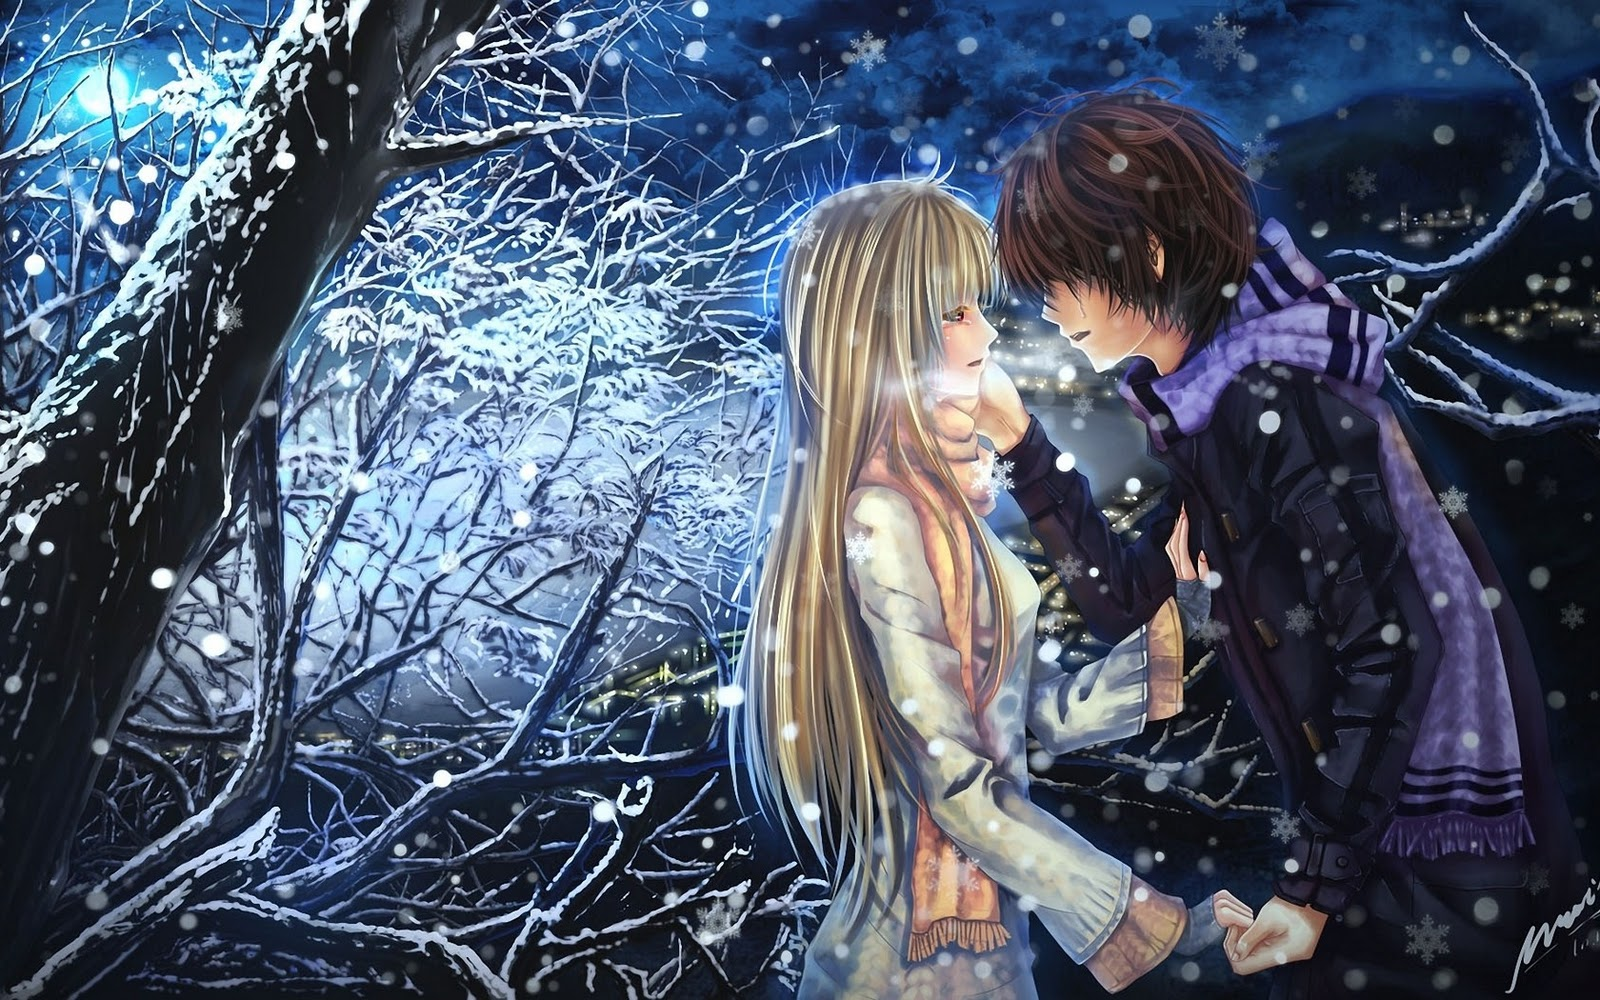 Love couple Full Hd Desktop Wallpaper : A2Z Wallpapers: Anime couples In Love Wallpapers